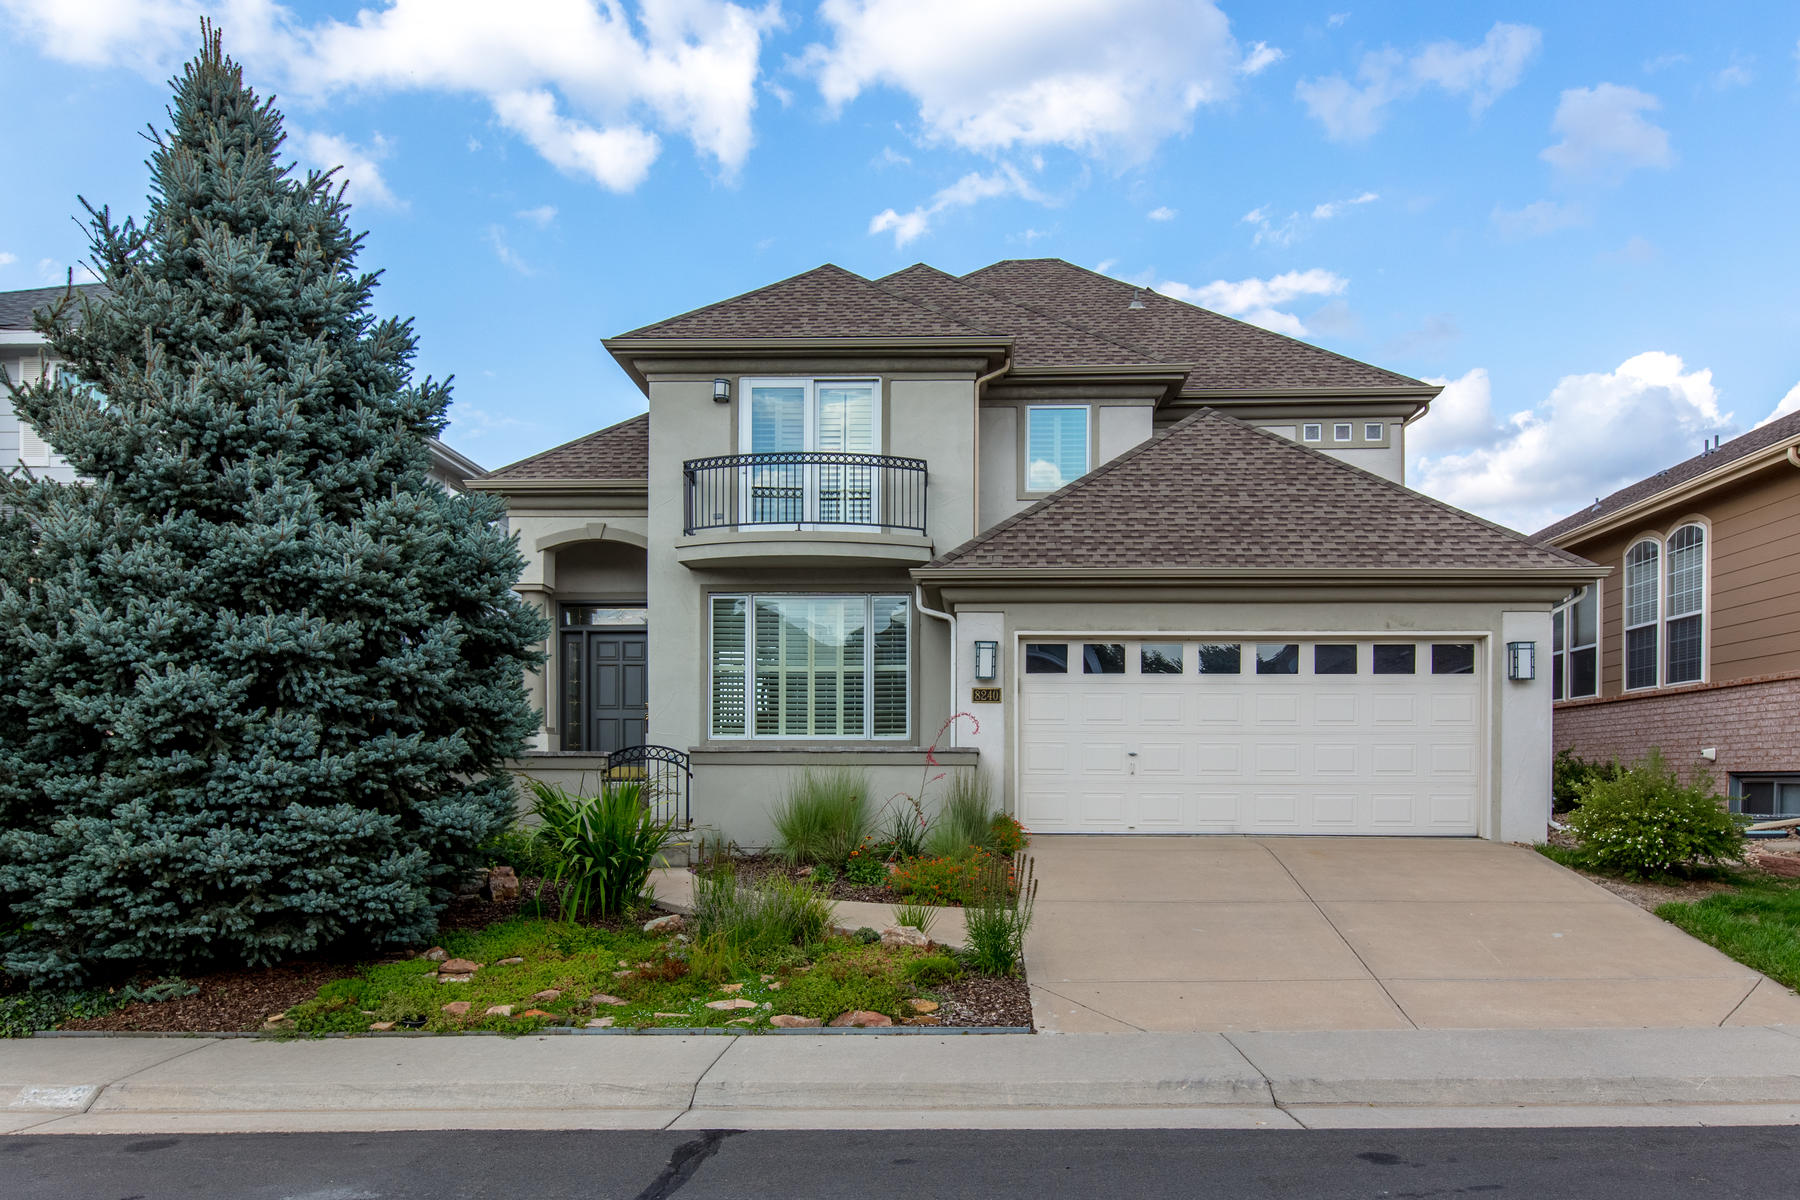 Single Family Home for Active at The Fairways 8240 S Albion St Centennial, Colorado 80122 United States